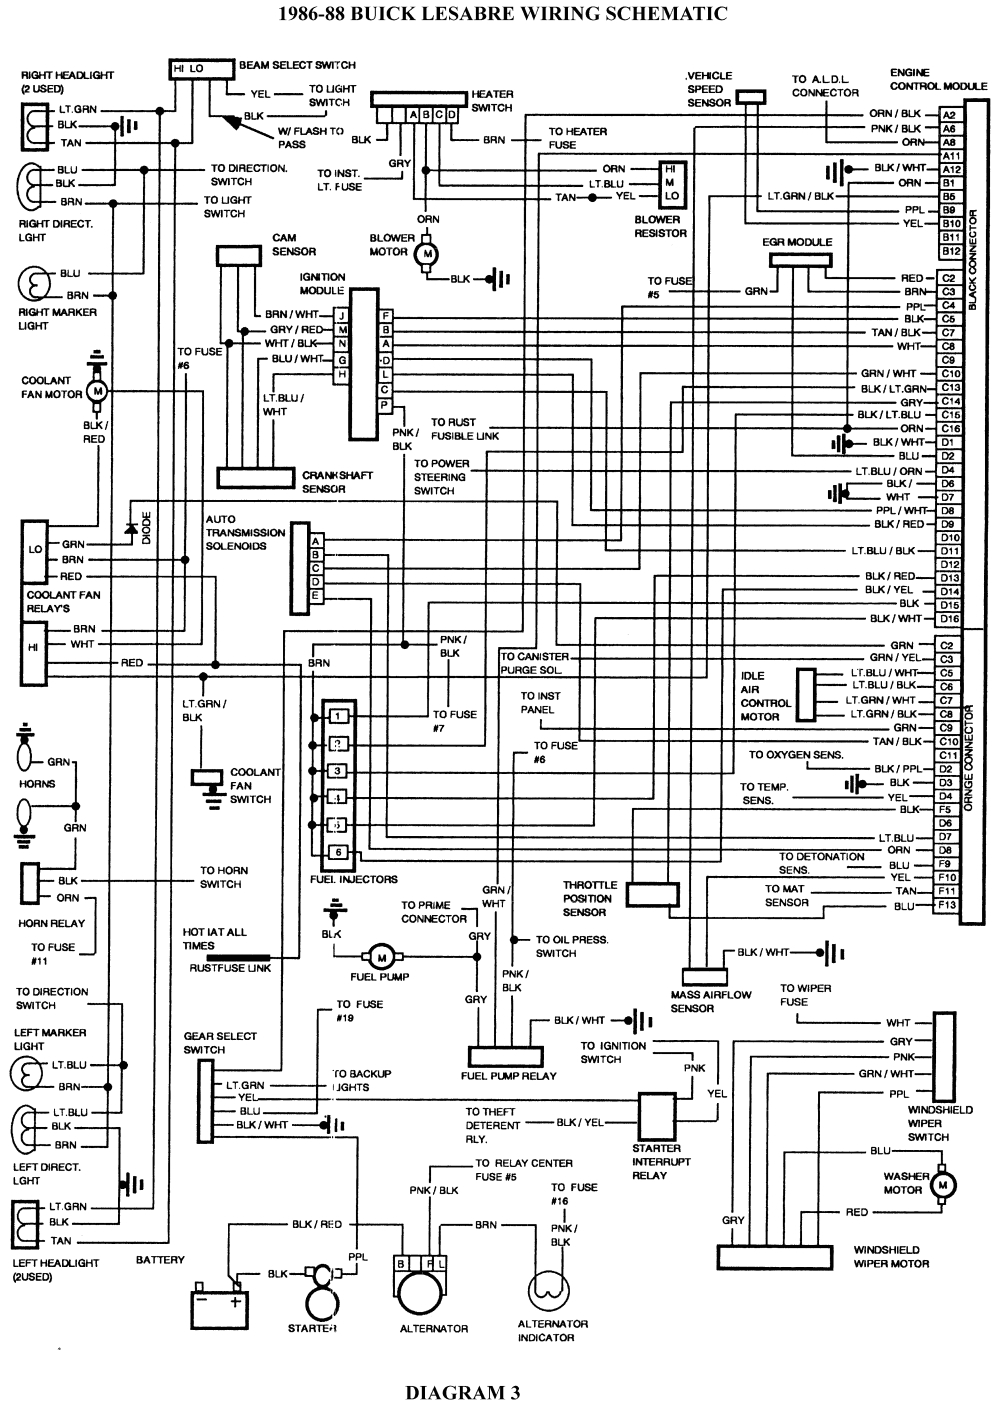 5 1986 88 buick lesabre wiring schematic